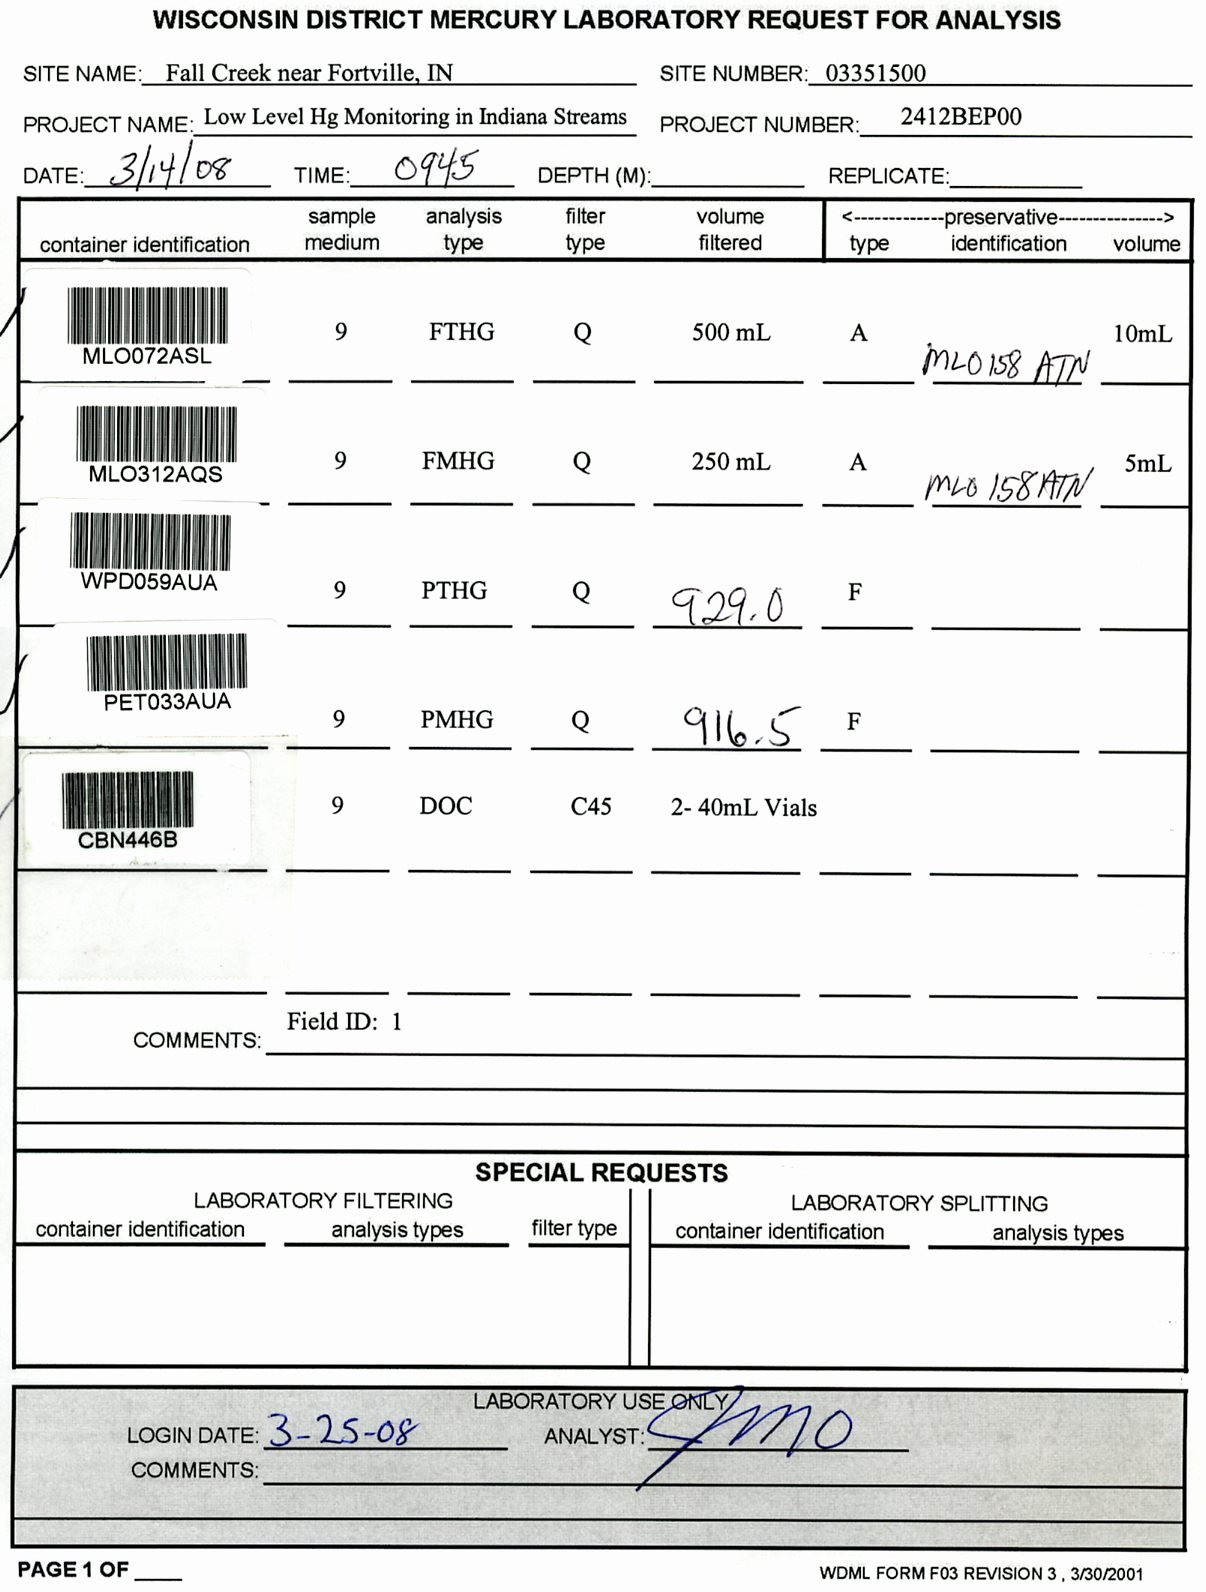 Chemical Hygiene Plan Template Luxury Sample Rfa form Filled Out Properly Usgs Mercury